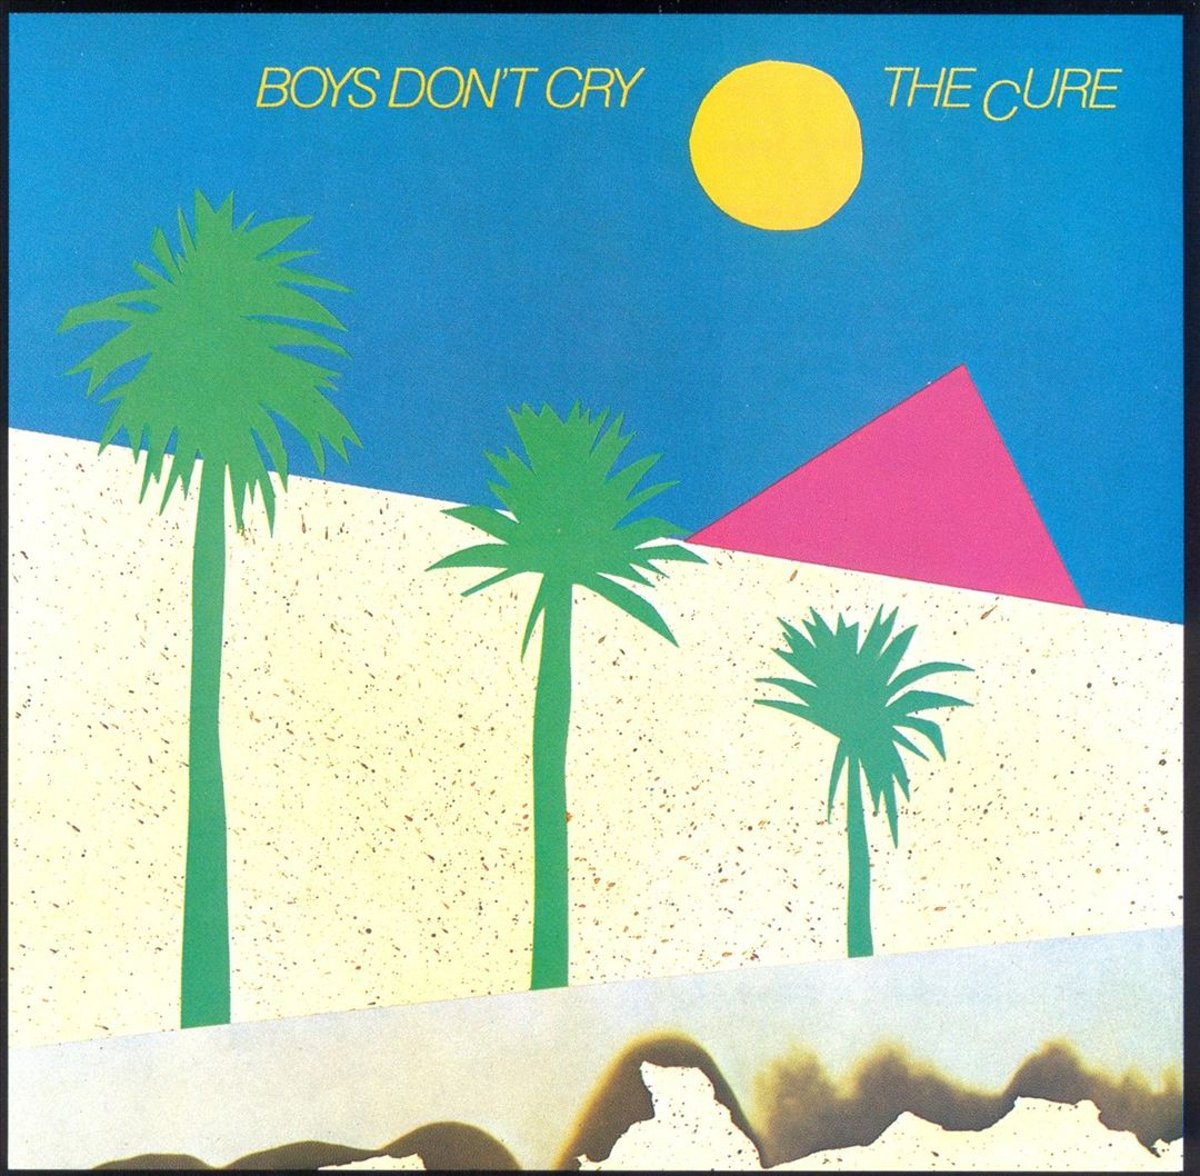 NEWS Plastic Passion | This Day 40 Years Ago, The Cure Release Boys Don't Cry!